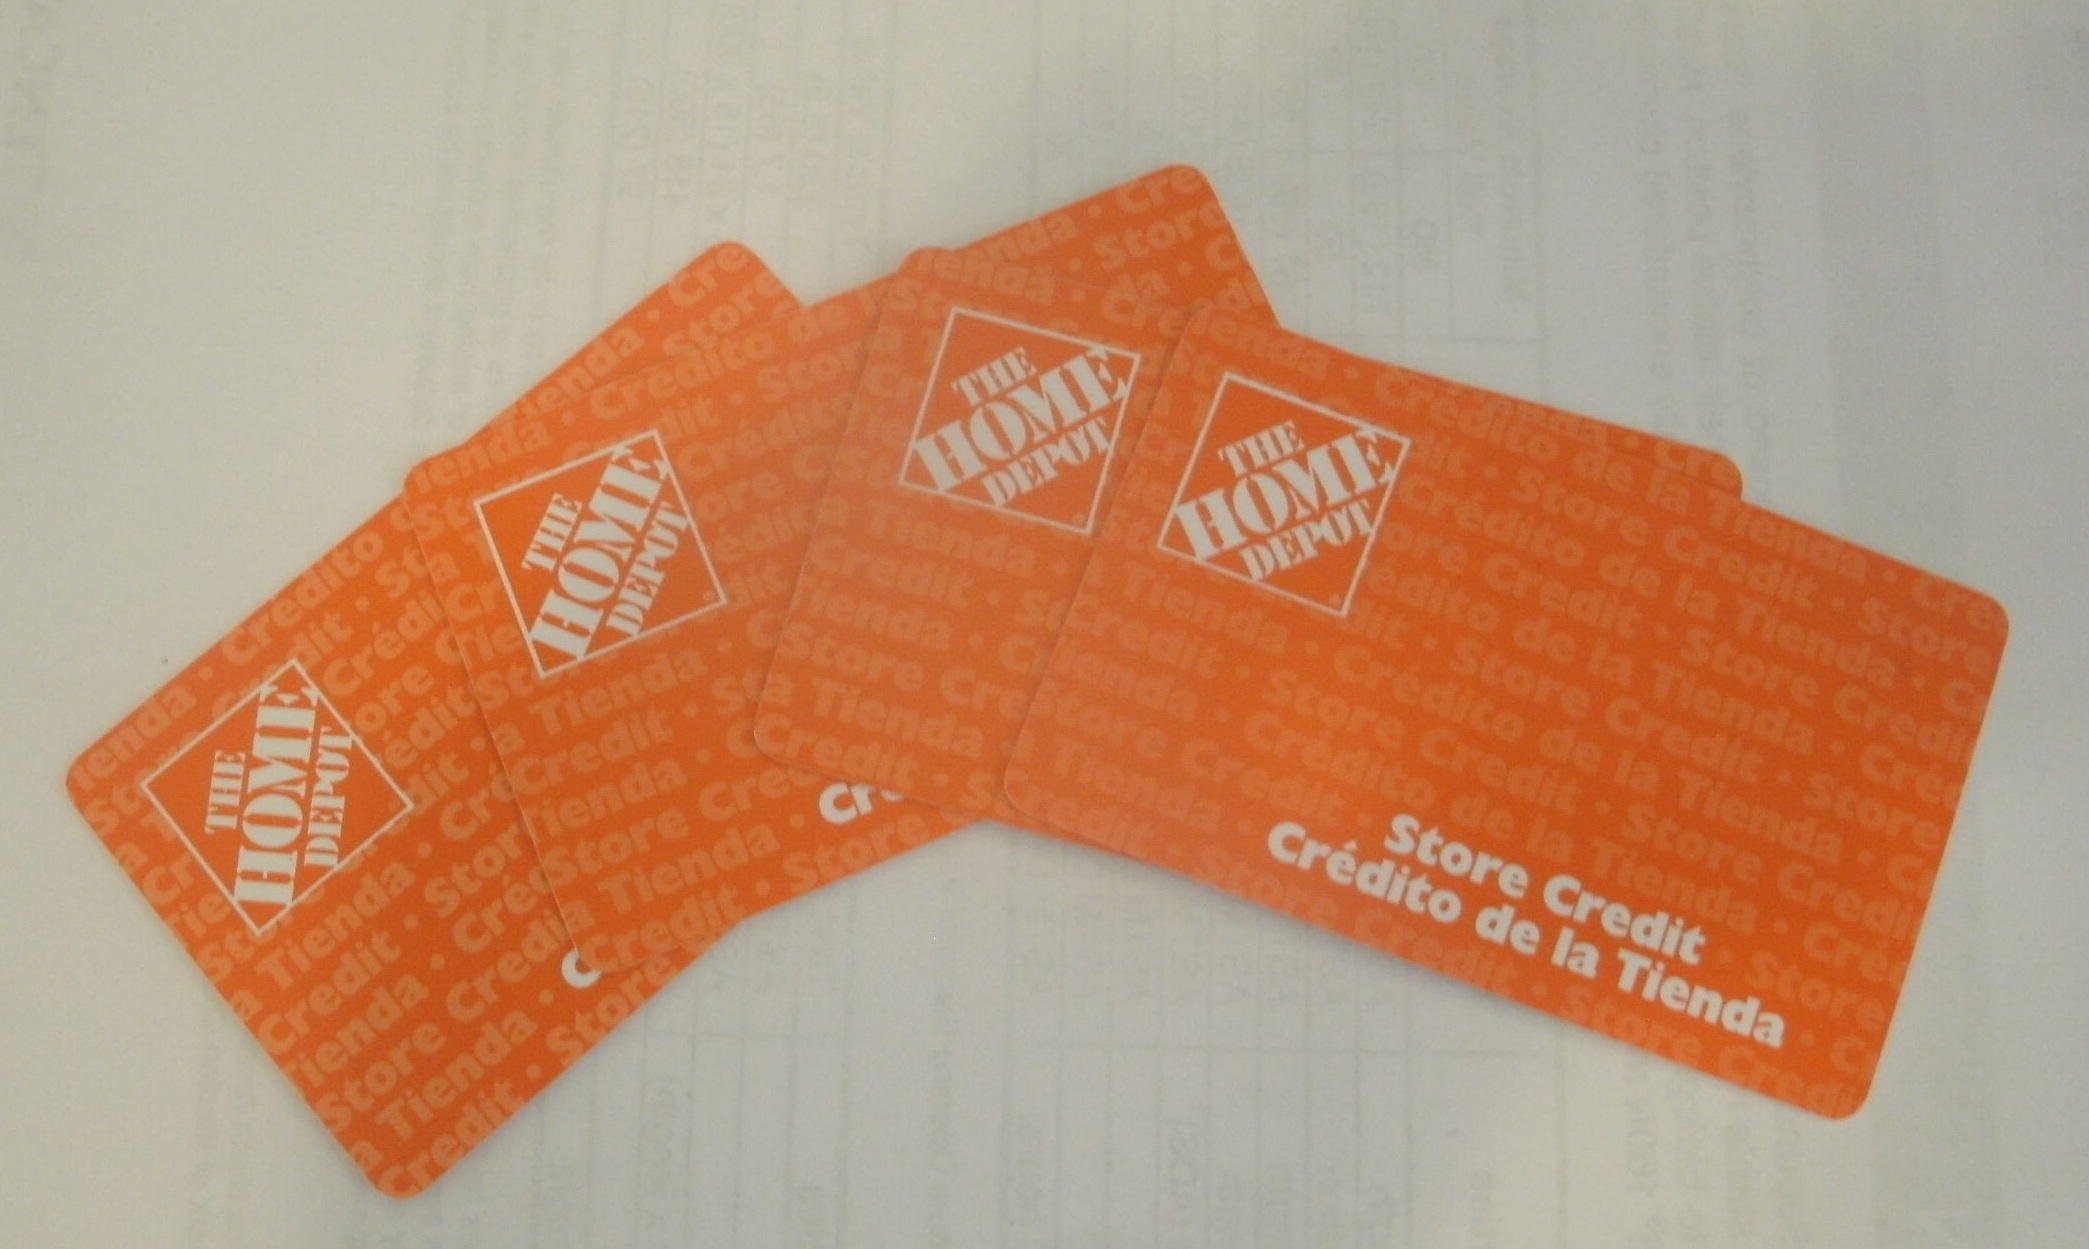 How To Safely Buy Discounted Home Depot Gift Card Off Craigslist